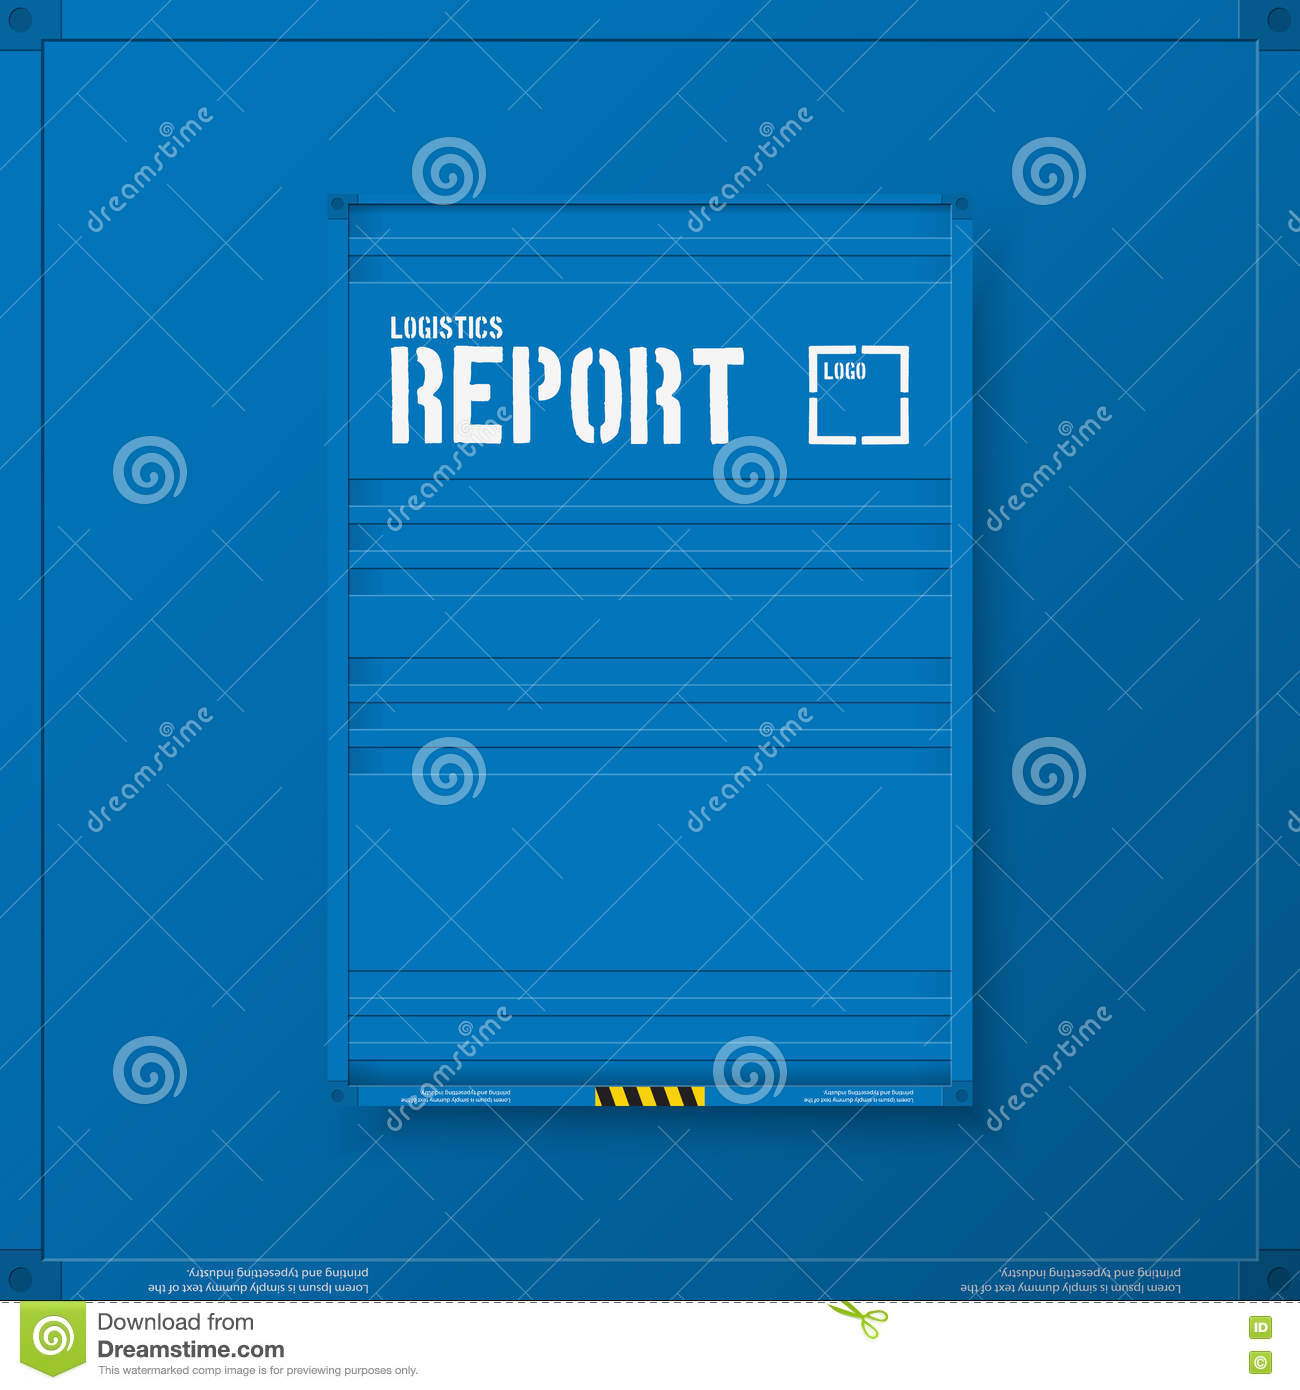 logistic transport business templates for flyers brochure logistic transport business corporate identity templates for flyers brochure annual report cover vector royalty